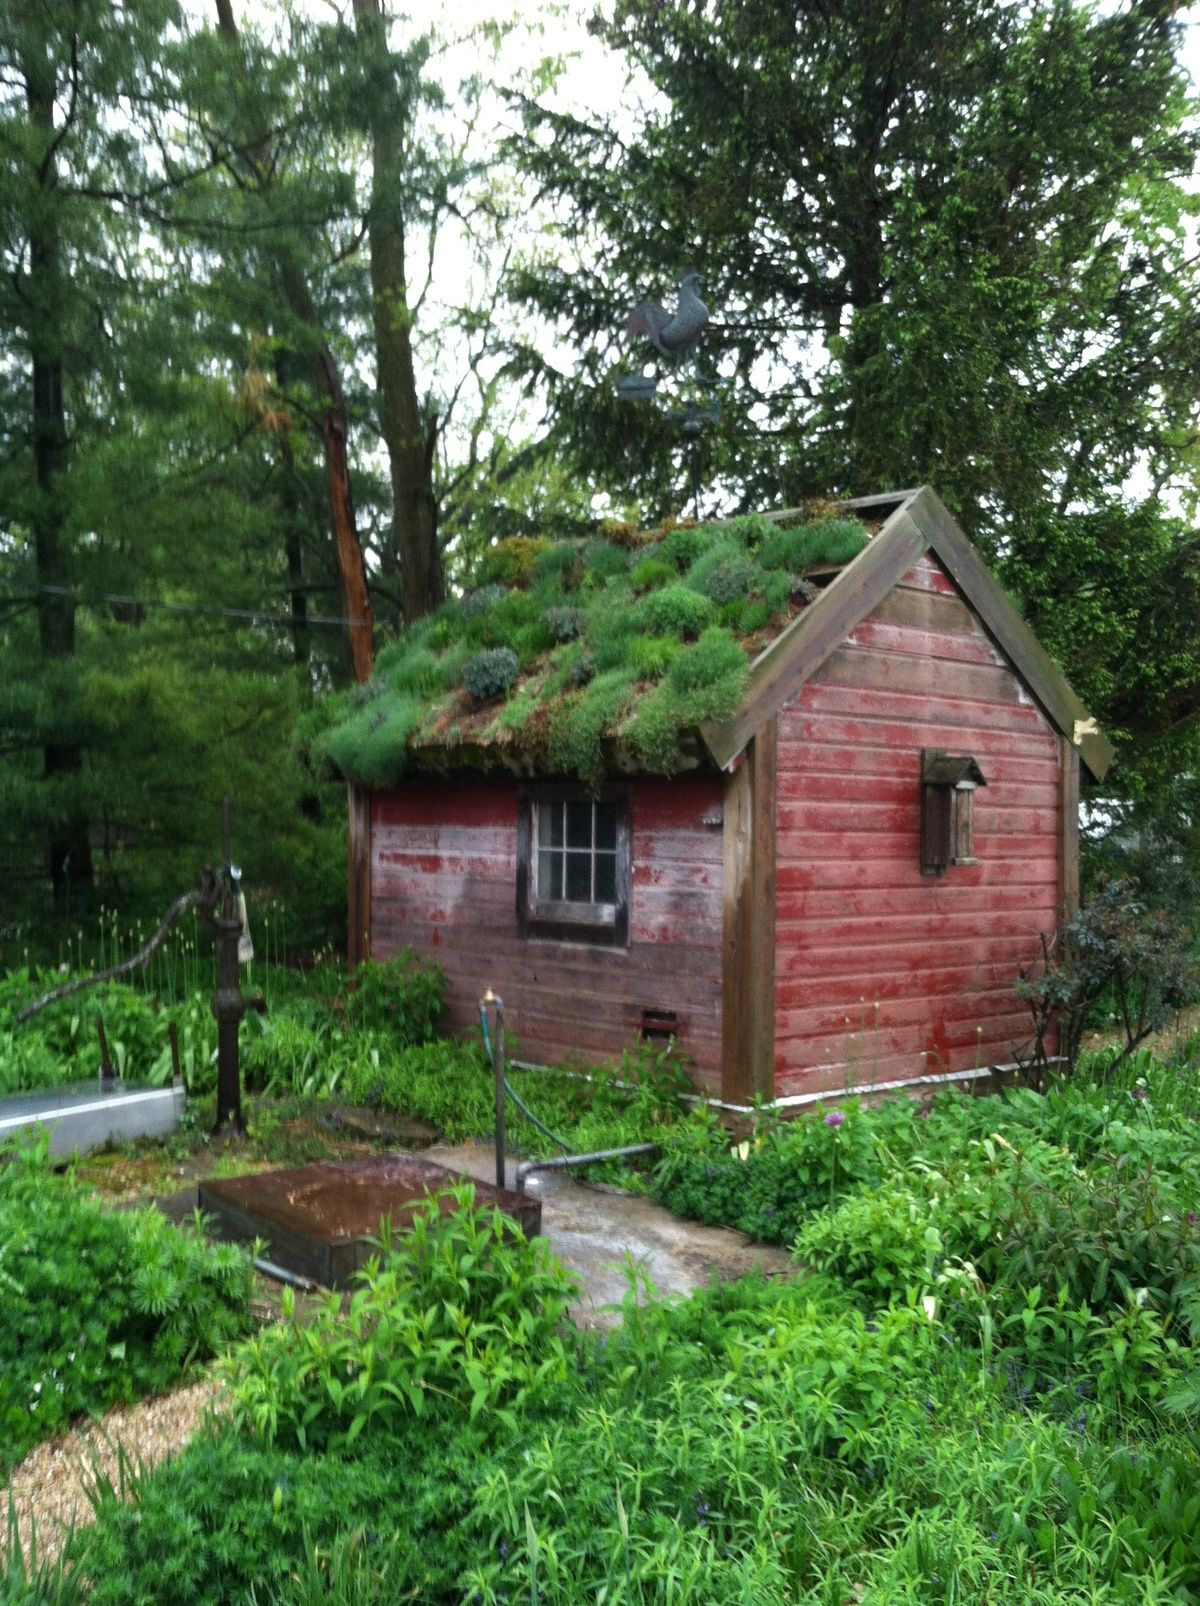 7ef24b73e9cca535176e4a22fa2db29e Jpg 1 200 1 606 Pixels Living Green Roof Garden Buildings Greenhouse Shed